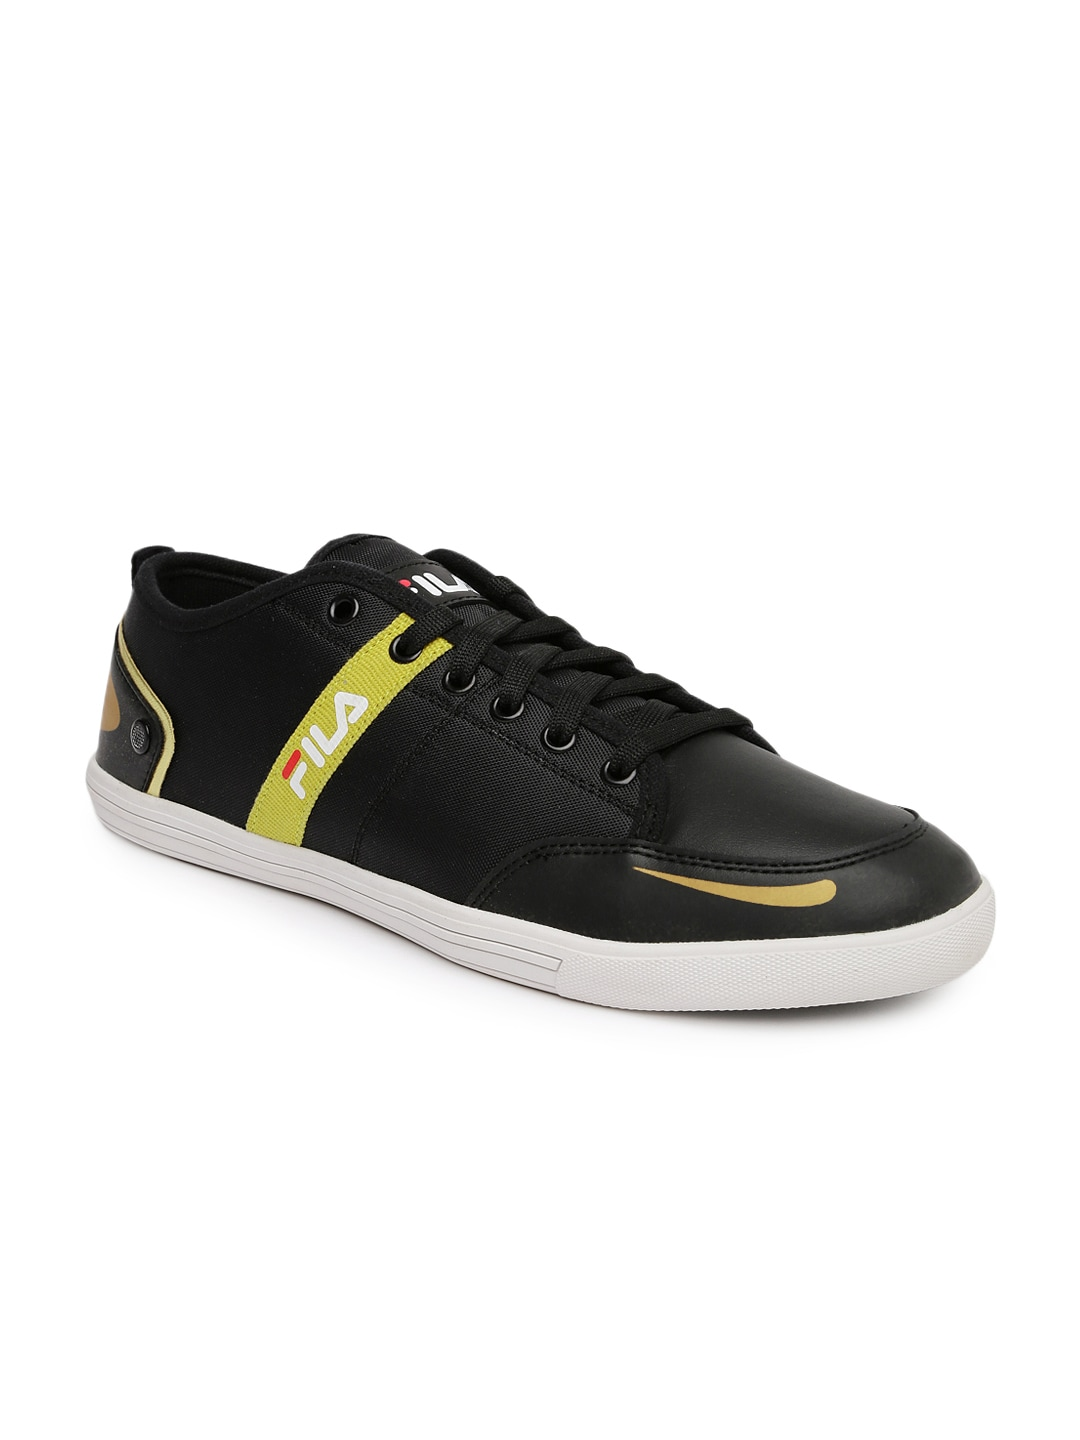 5907d14337 Fila Vans Casual - Buy Fila Vans Casual online in India